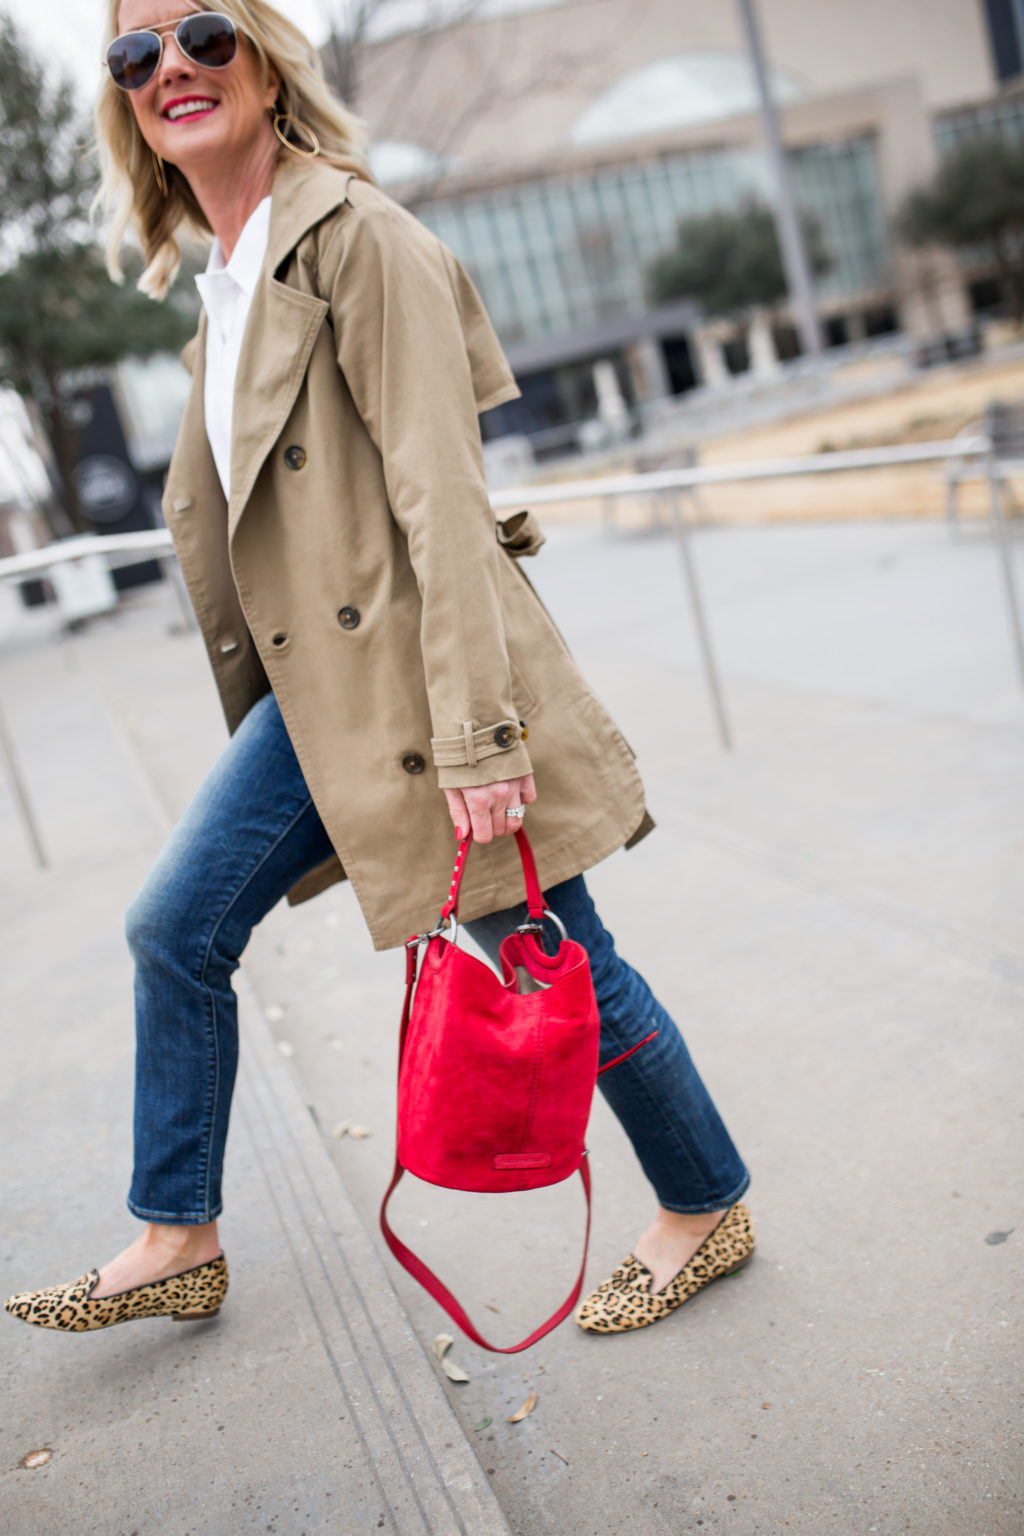 trench coat spring outfit idea rainy days